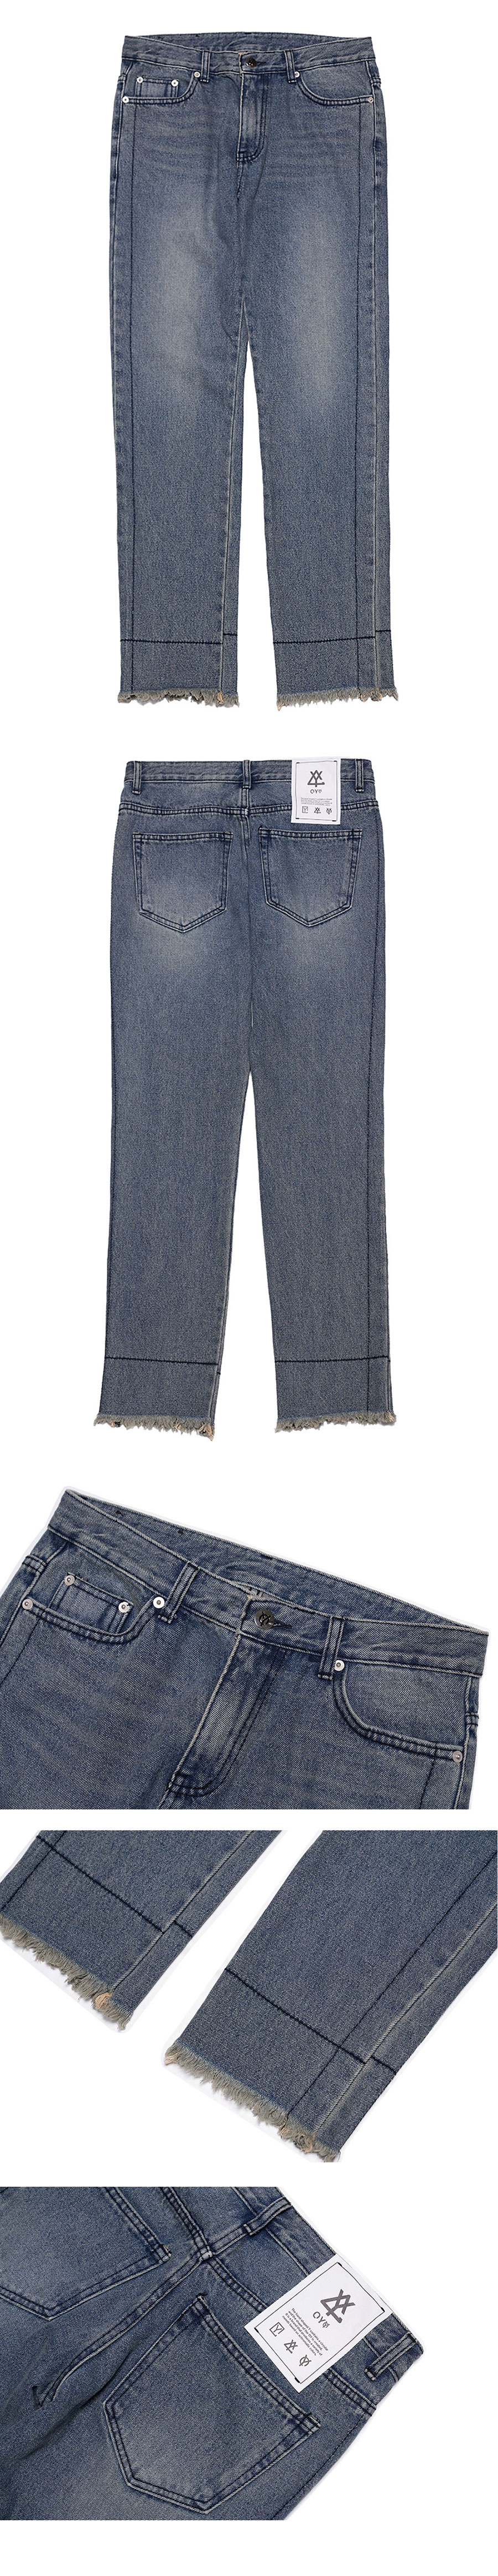 오와이(OY) STITCH DENIM JEANS